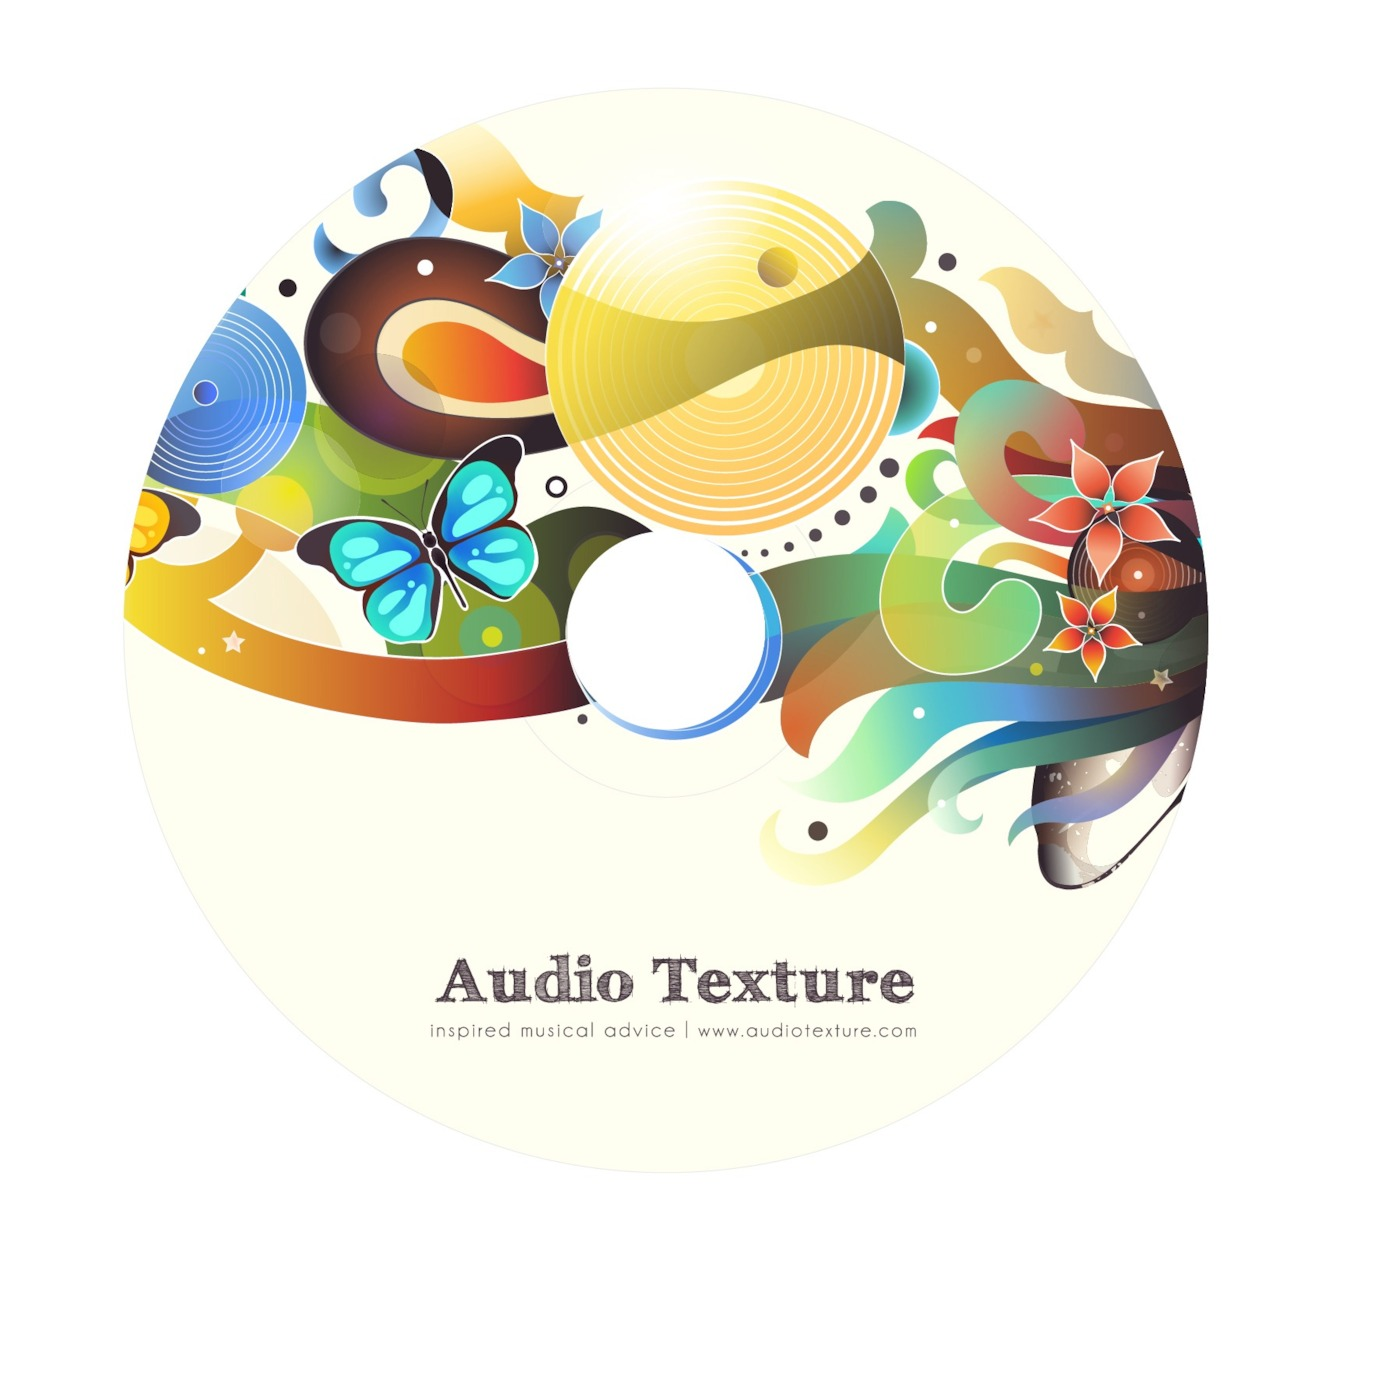 Audio Texture's Podcast